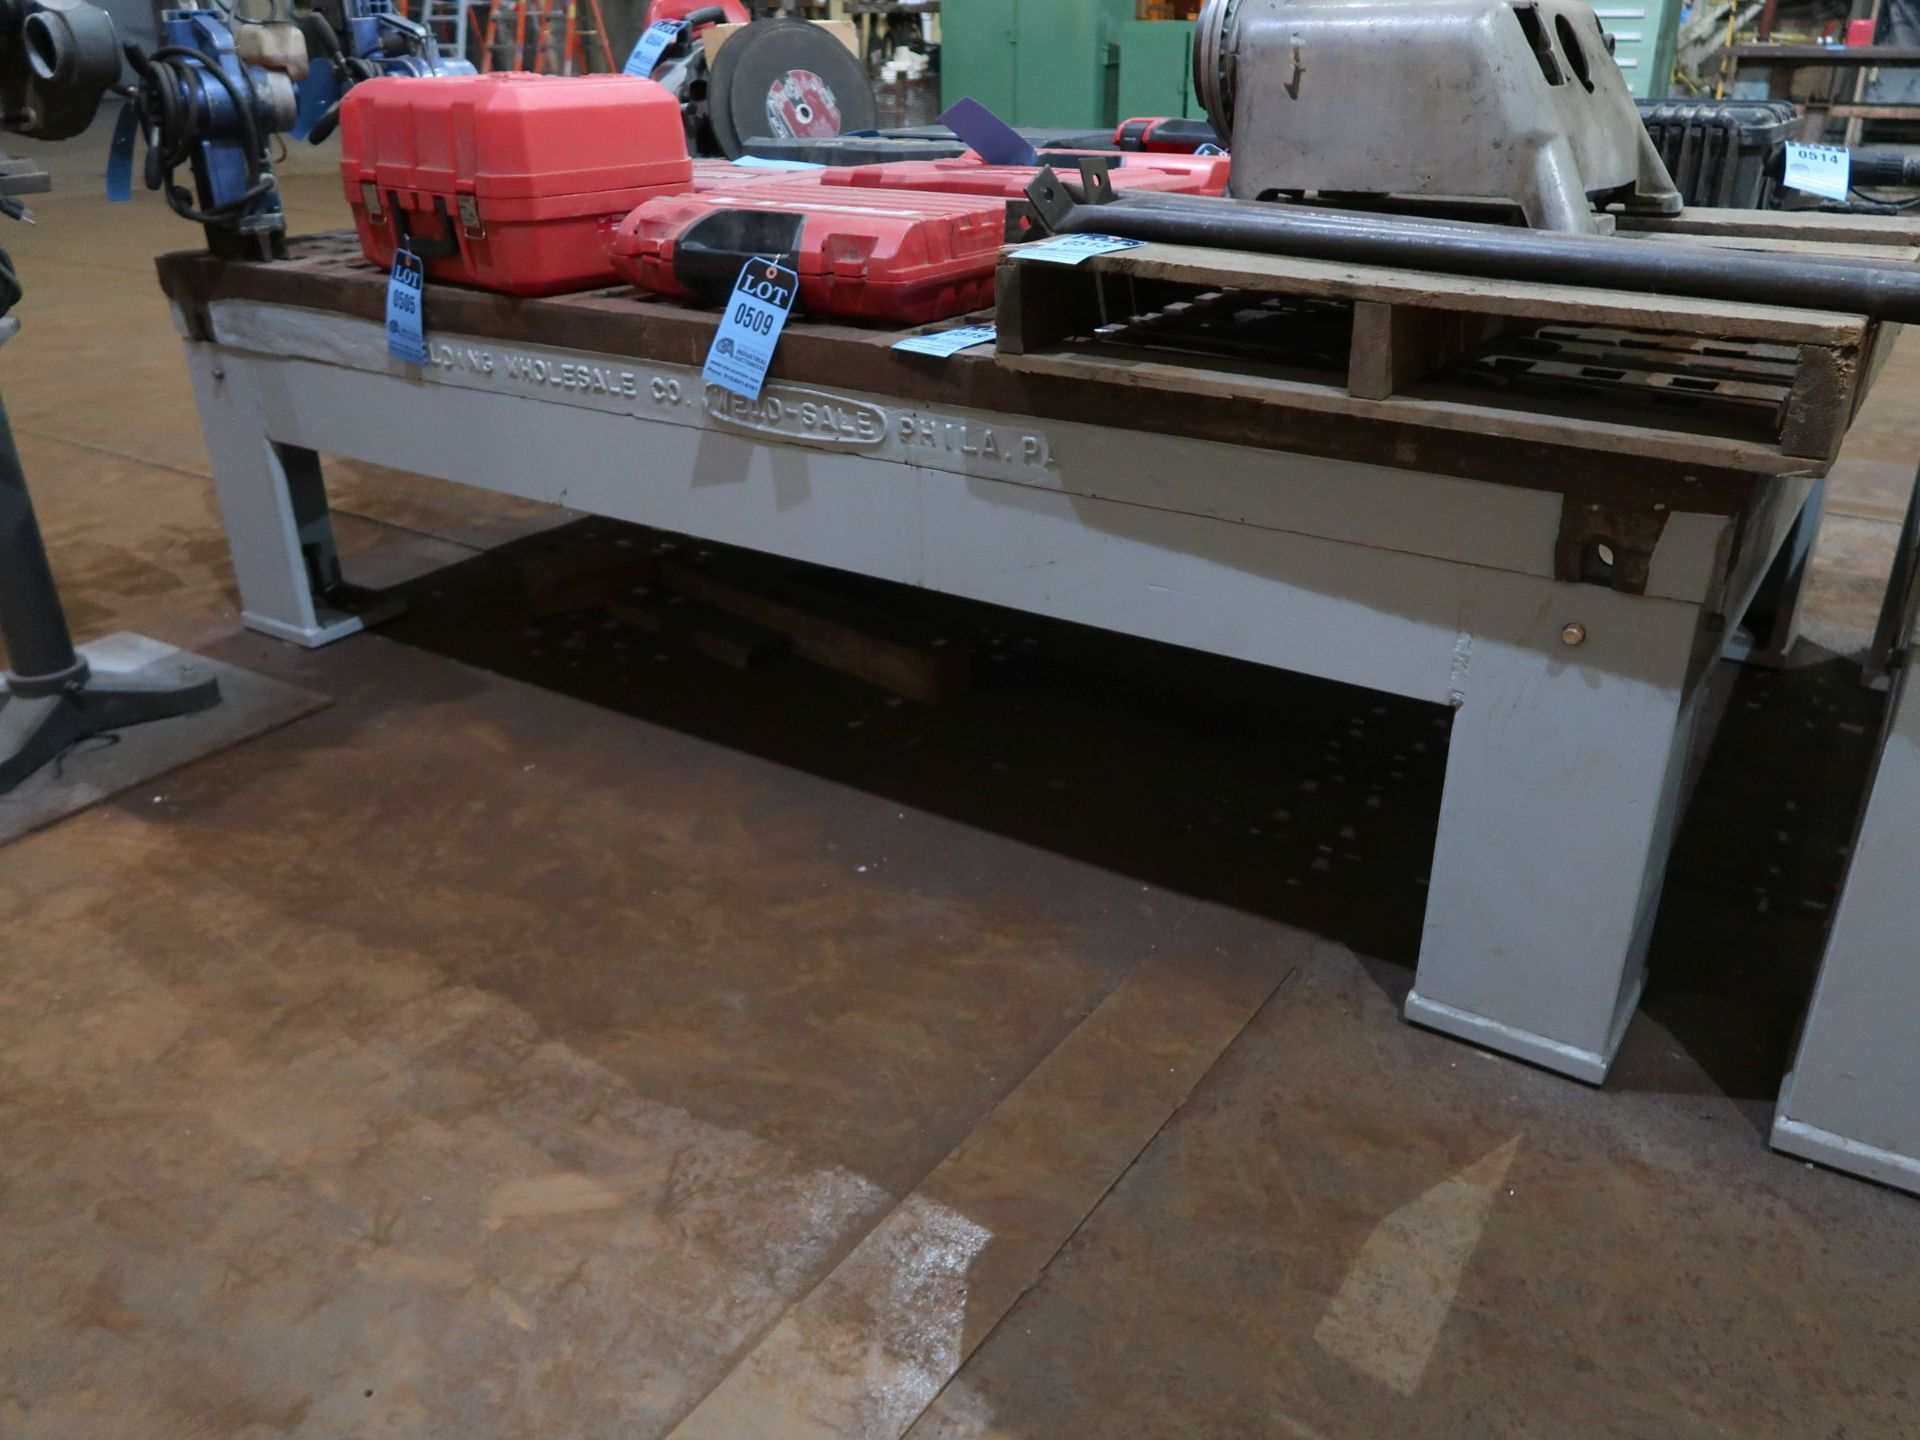 "Lot 519 - 96"" X 60"" X 5-1/2"" WELD-SALE ACORN WELDING TABLE"